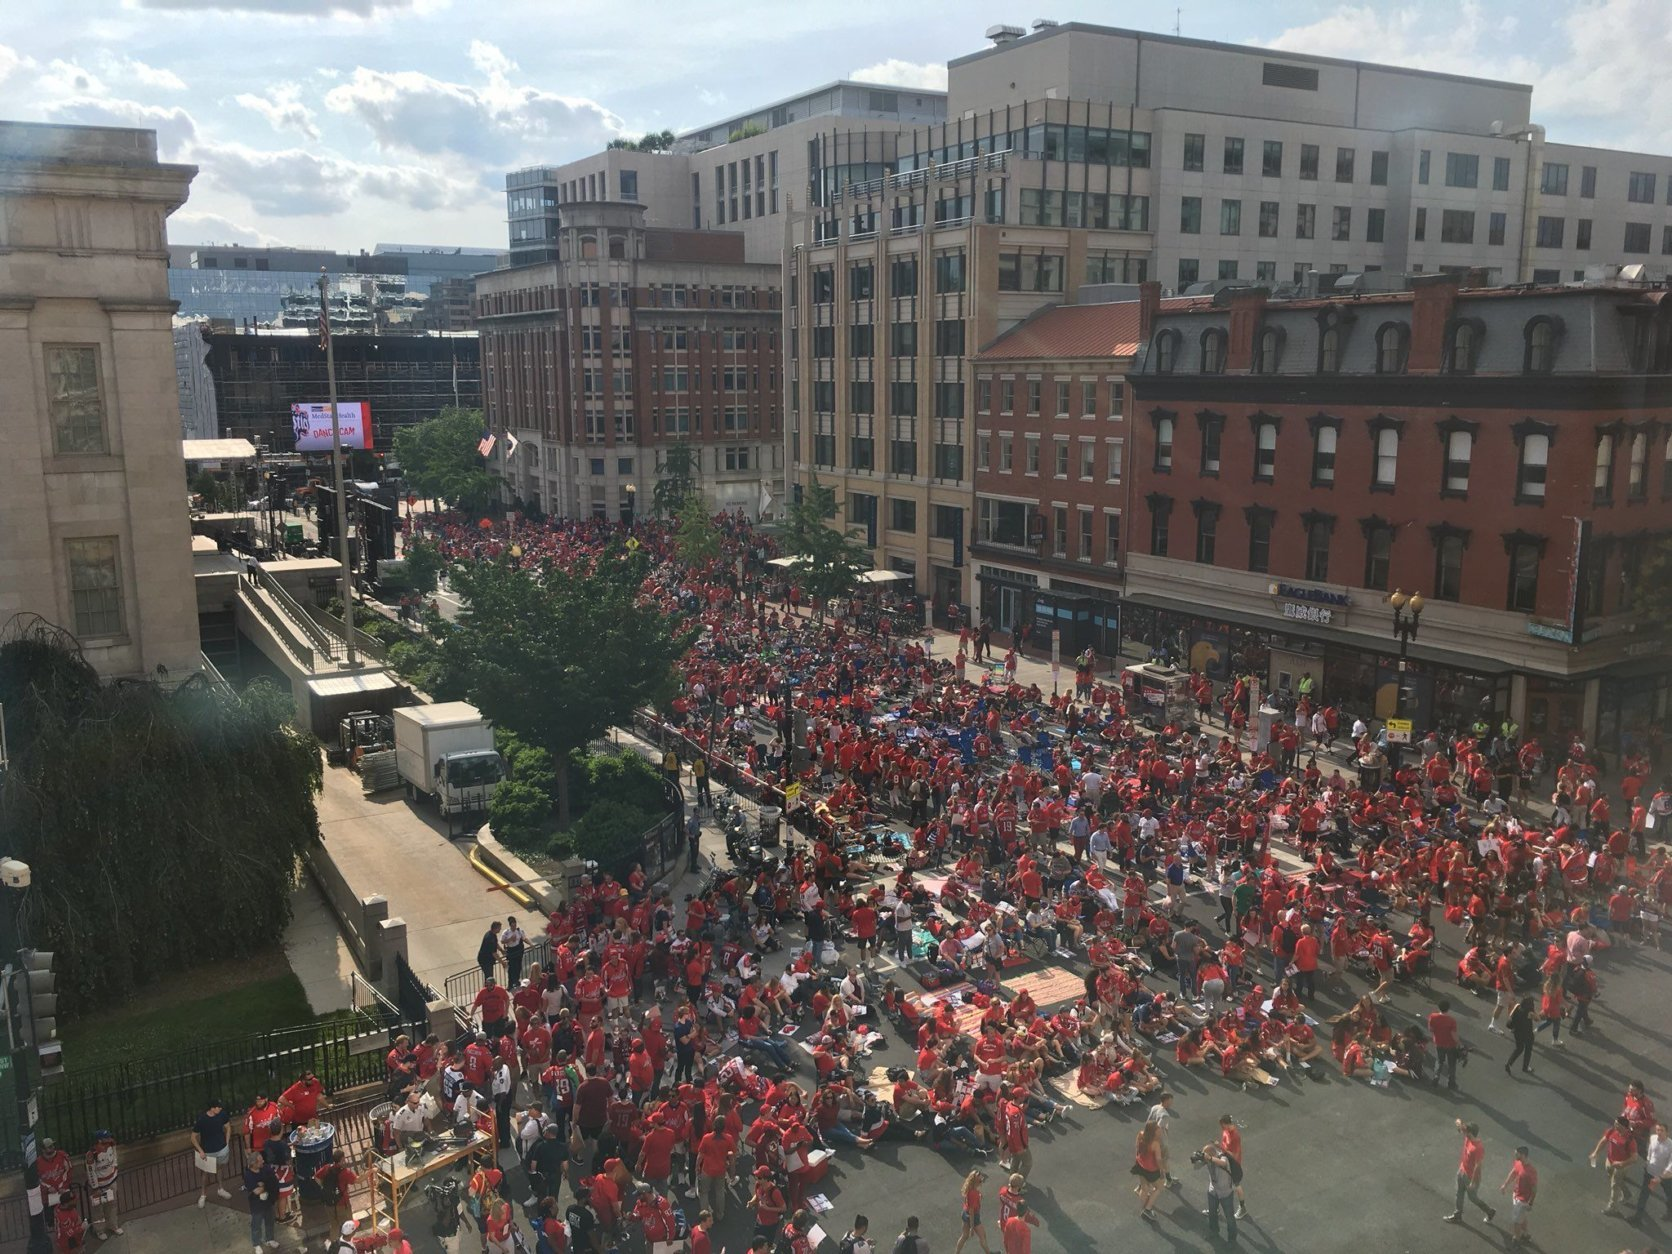 The view of Seventh and G streets from the 400 level of Capital One Arena. (WTOP/Noah Frank)